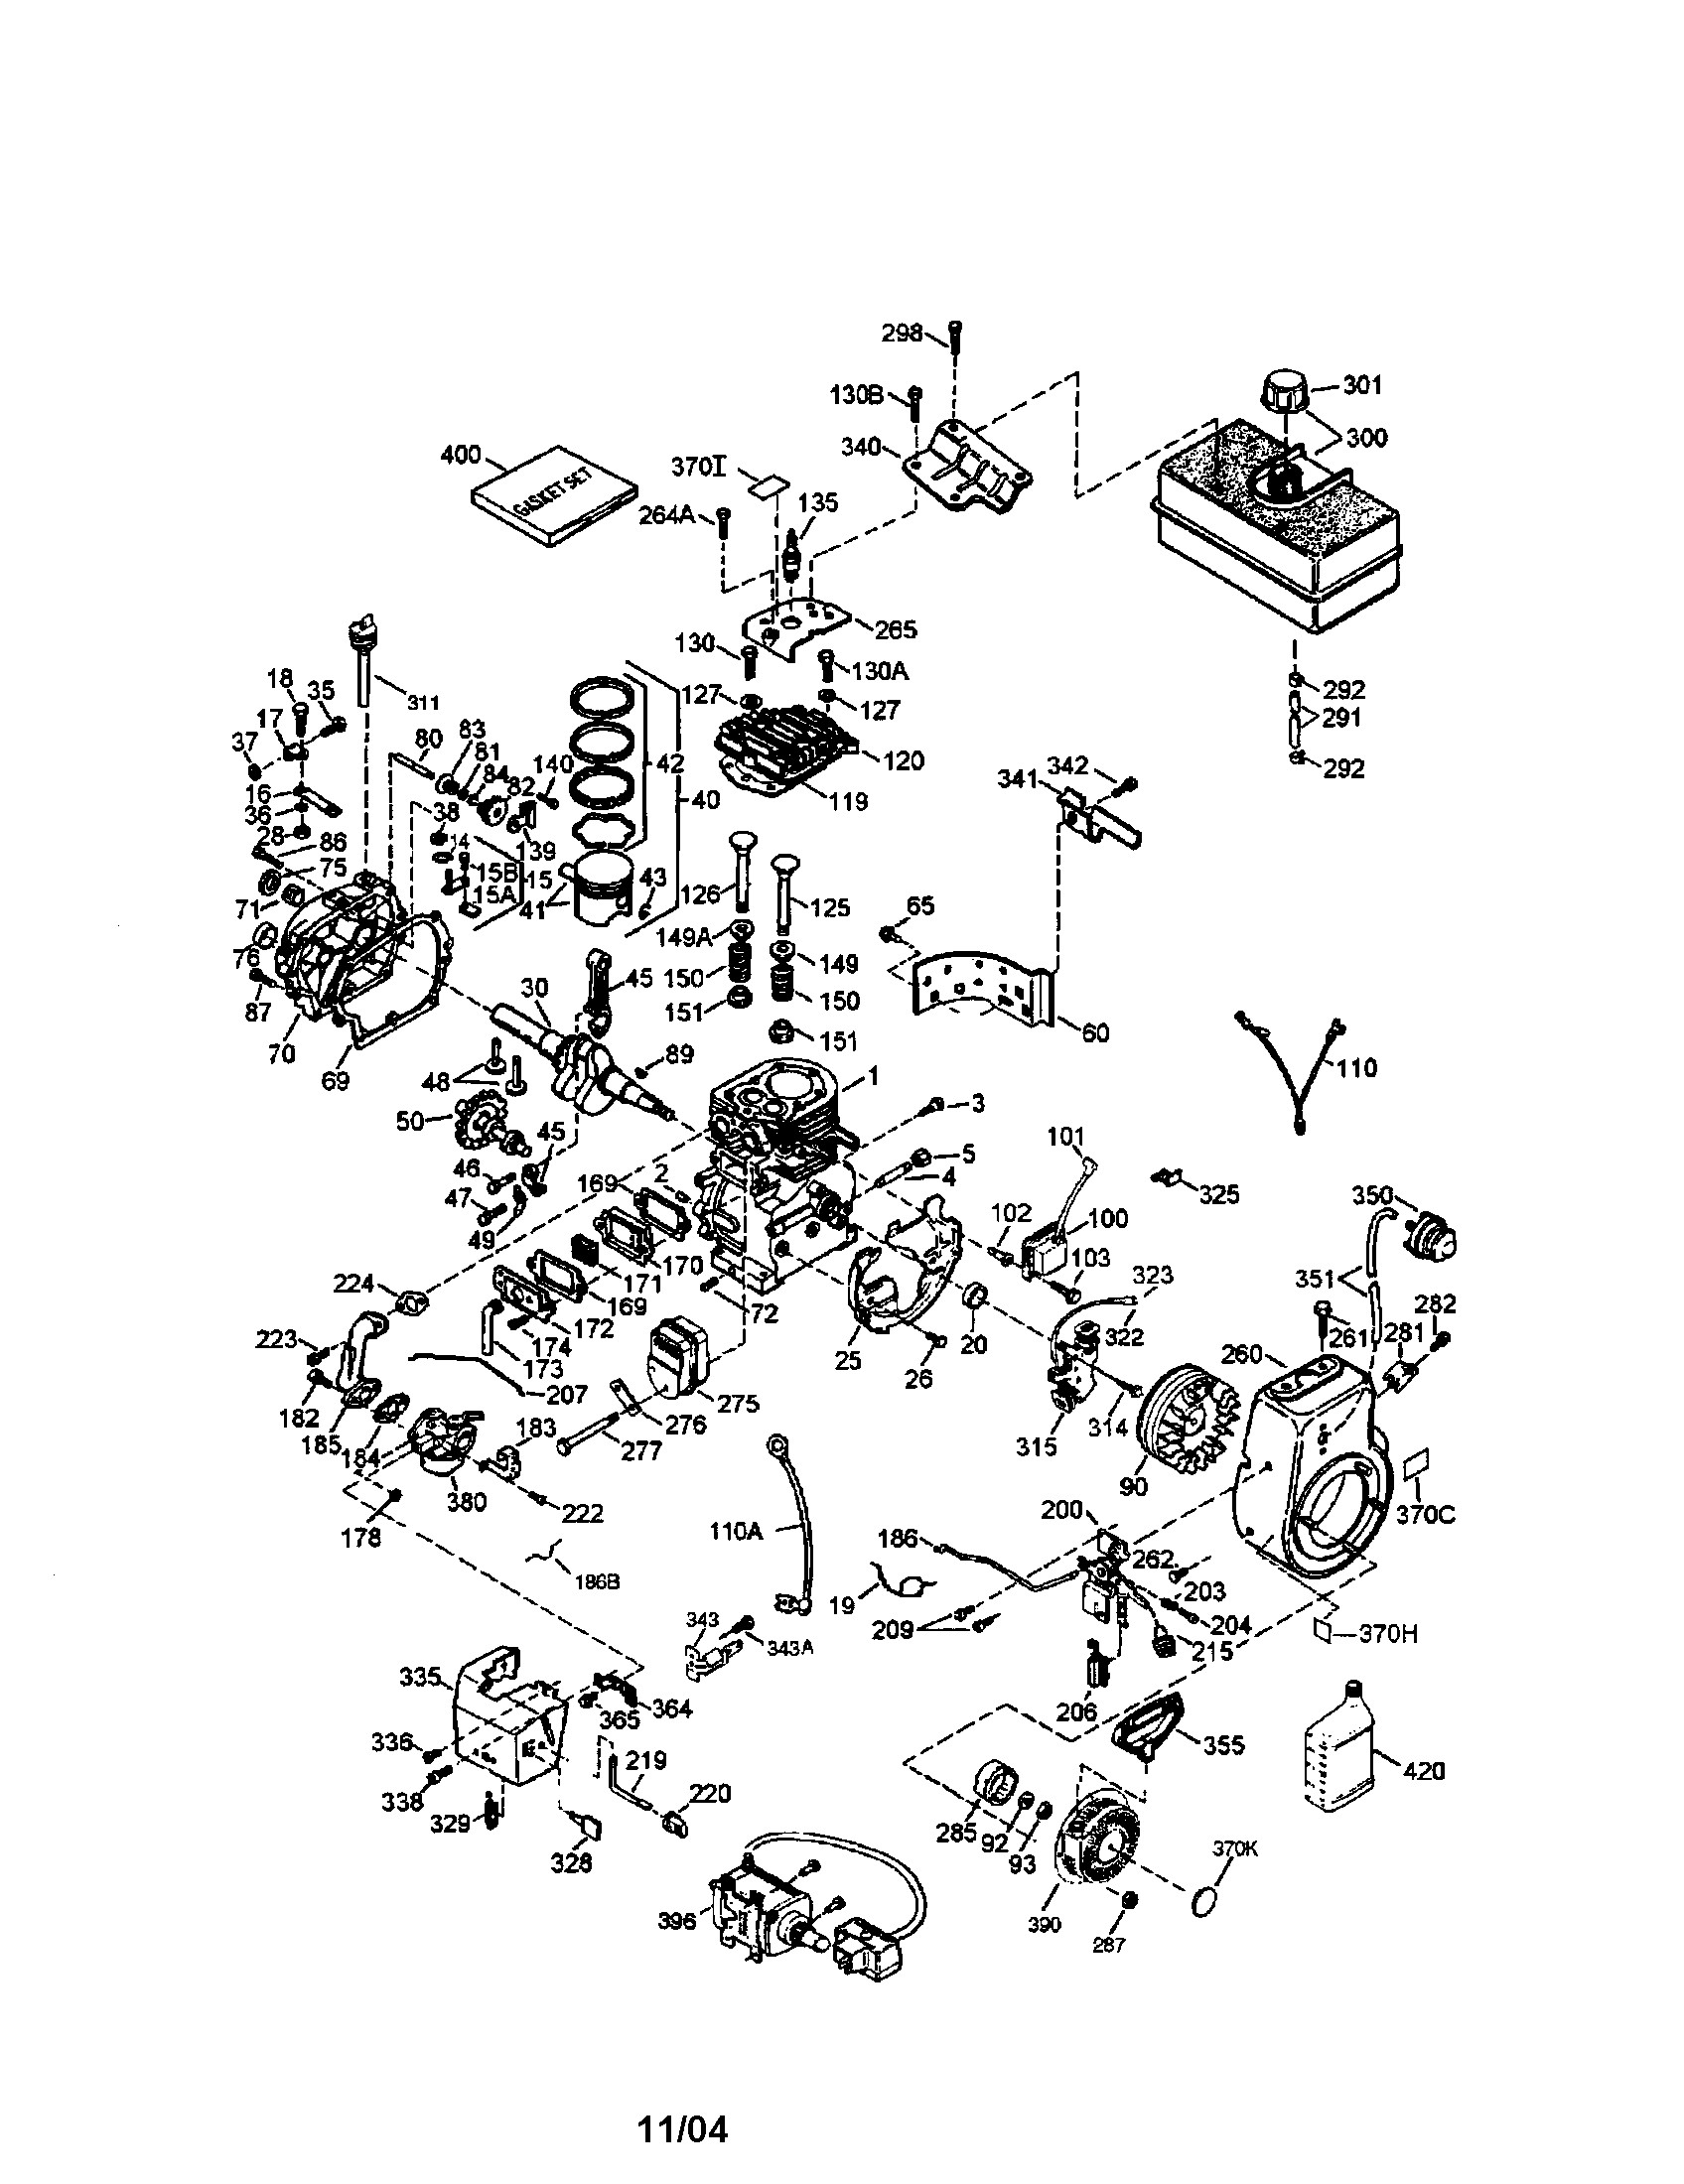 Hm100 Ignition System Wiring Diagram - Trusted Wiring Diagram •